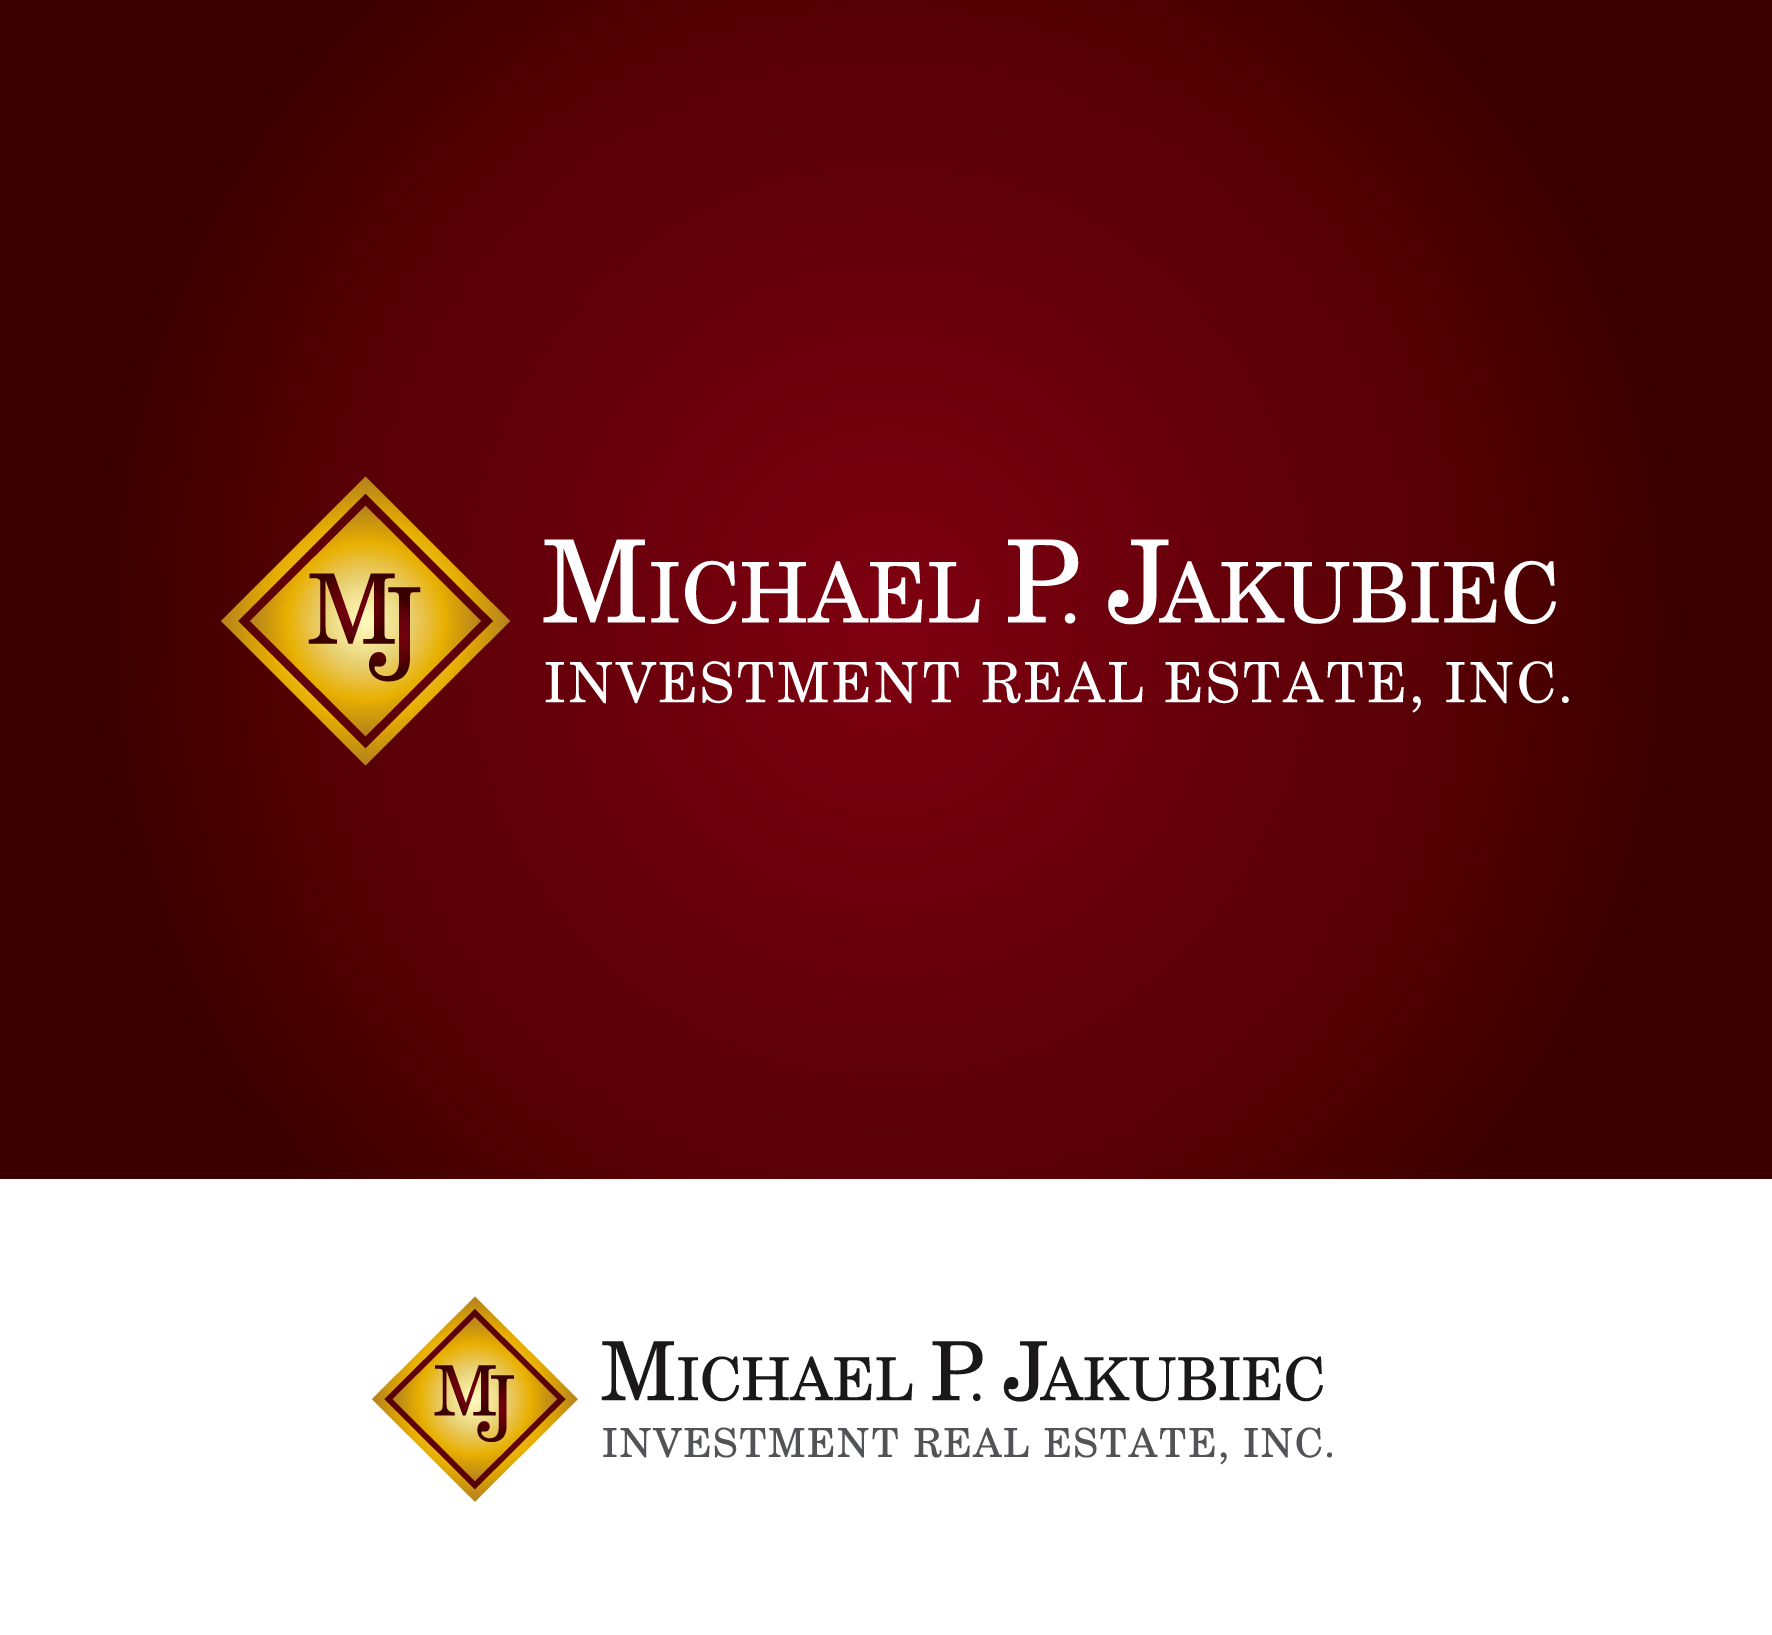 Logo Design by luna - Entry No. 42 in the Logo Design Contest New Logo Design for Michael P. Jakubiec Investment Real Estate, Inc..